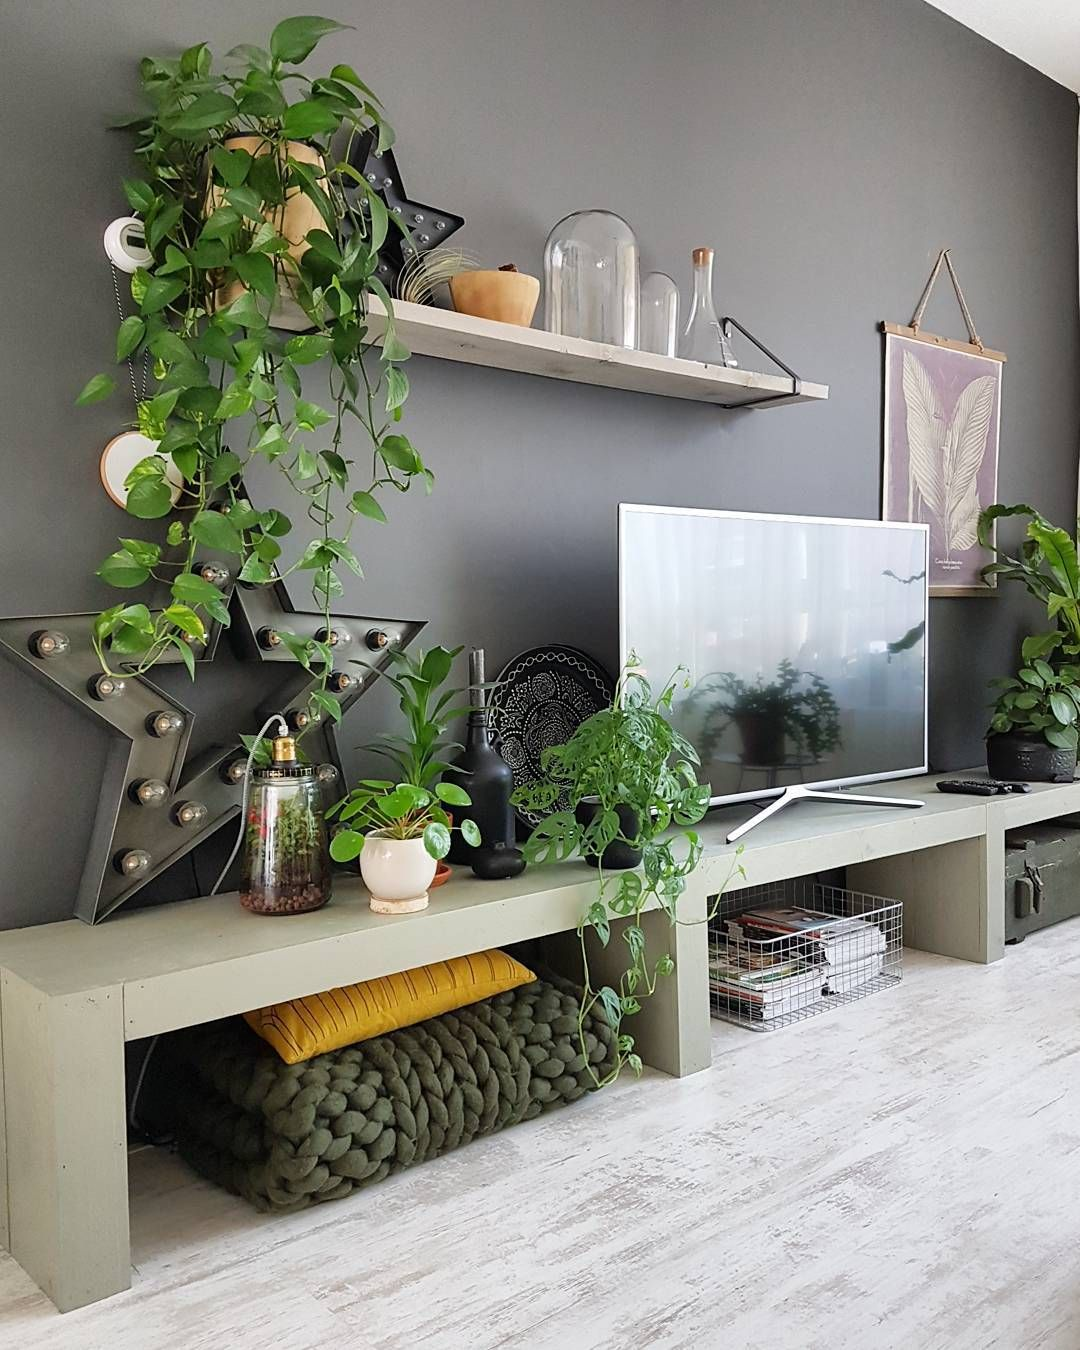 Tv Cabinet And Indoor Plants Tv Cabinet Decor House Plants